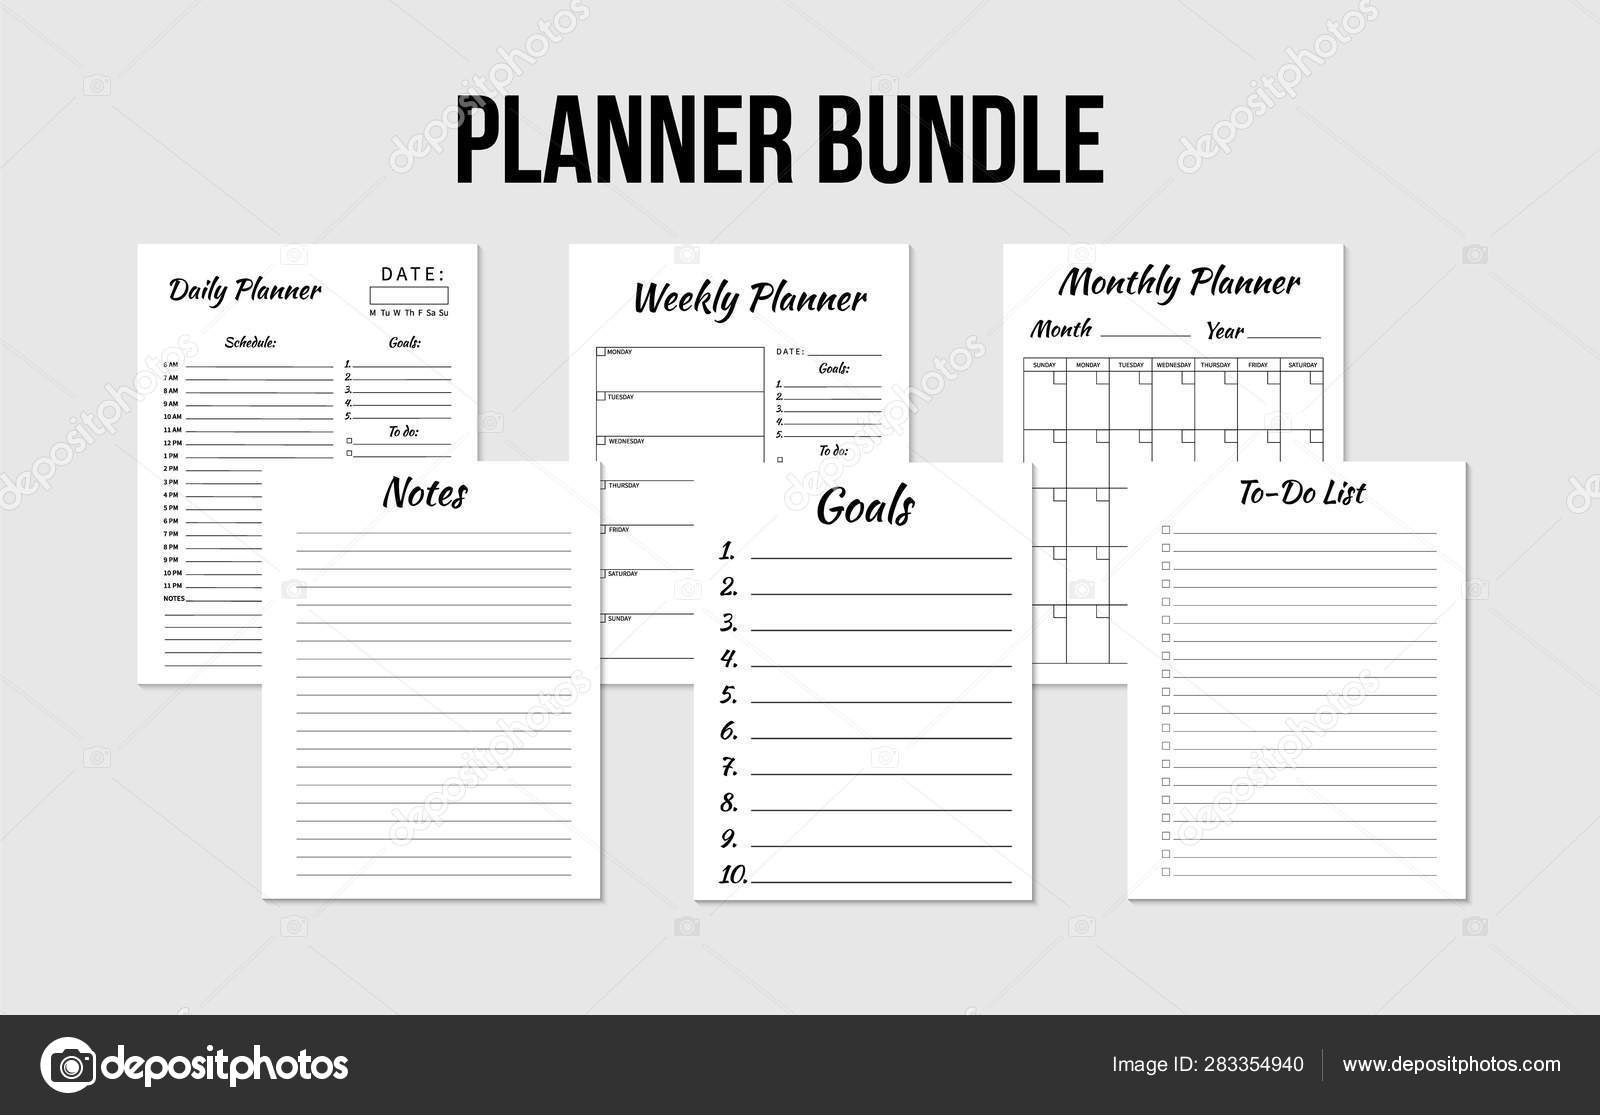 Planners Bundle Daily Weekly Monthly Planner Todo List Goals Regarding Blank To Do List Template